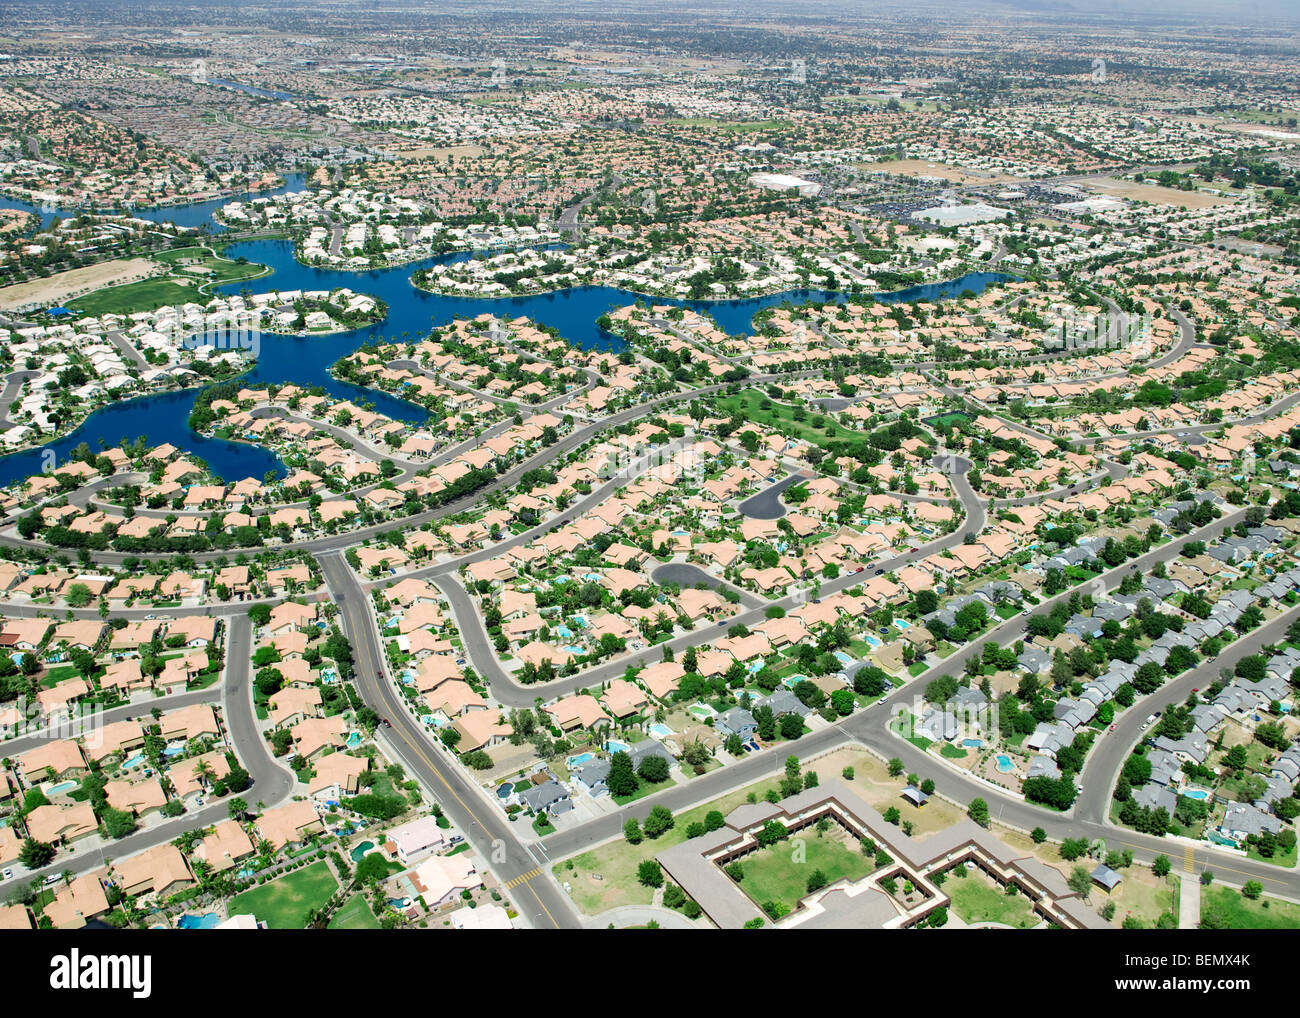 mobile homes for sale in california with Stock Photo Aerial View Of An American Suburb 26275107 on Whats In A Name Manufactured Homes also Mobile Home Tires For Sale also 5181418 moreover File Ralph J  Bunche House  Los Angeles besides Triple Wide Mobile Homes Pictures Ideas Photo Gallery.